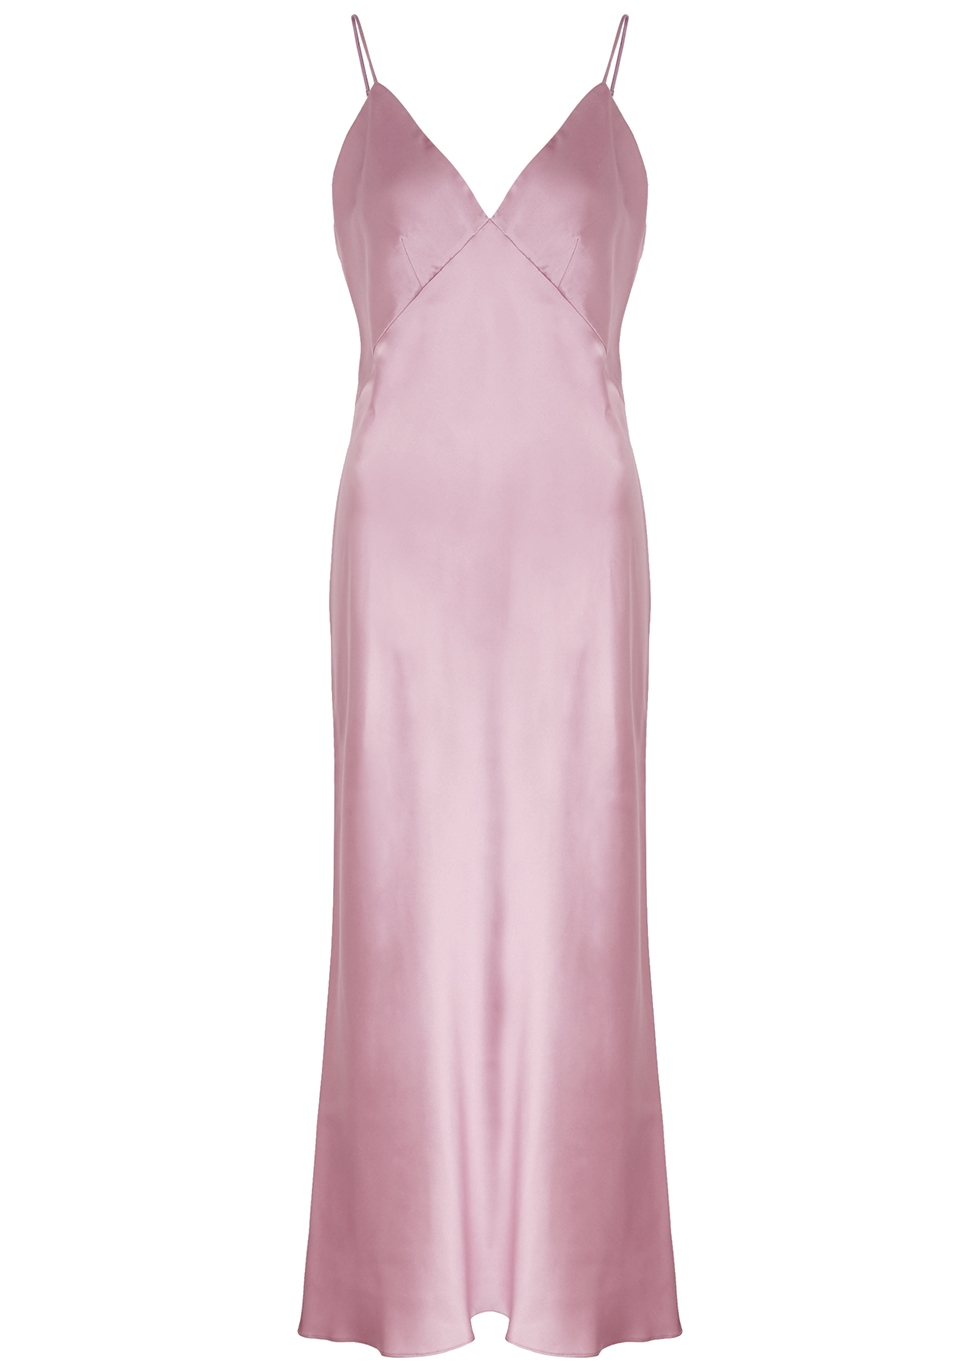 Issa pink bias-cut silk slip dress